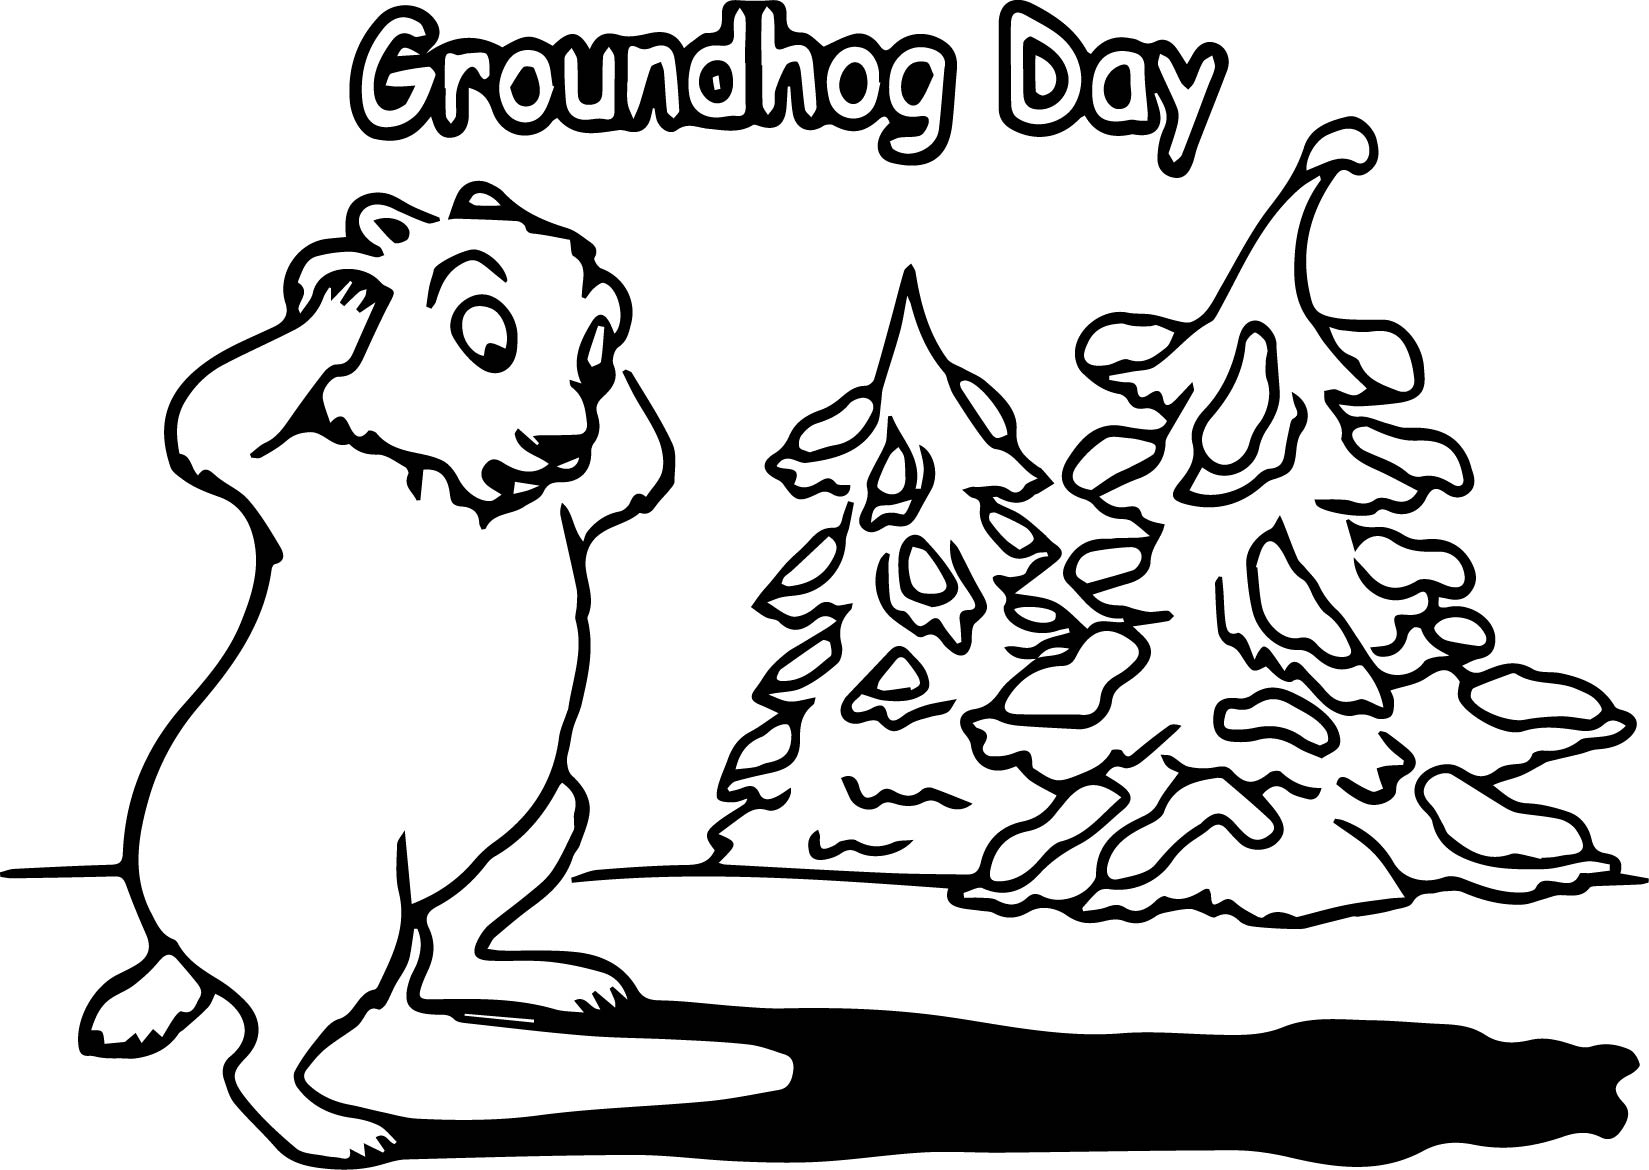 Groundhog Day Coloring Page Wecoloringpage